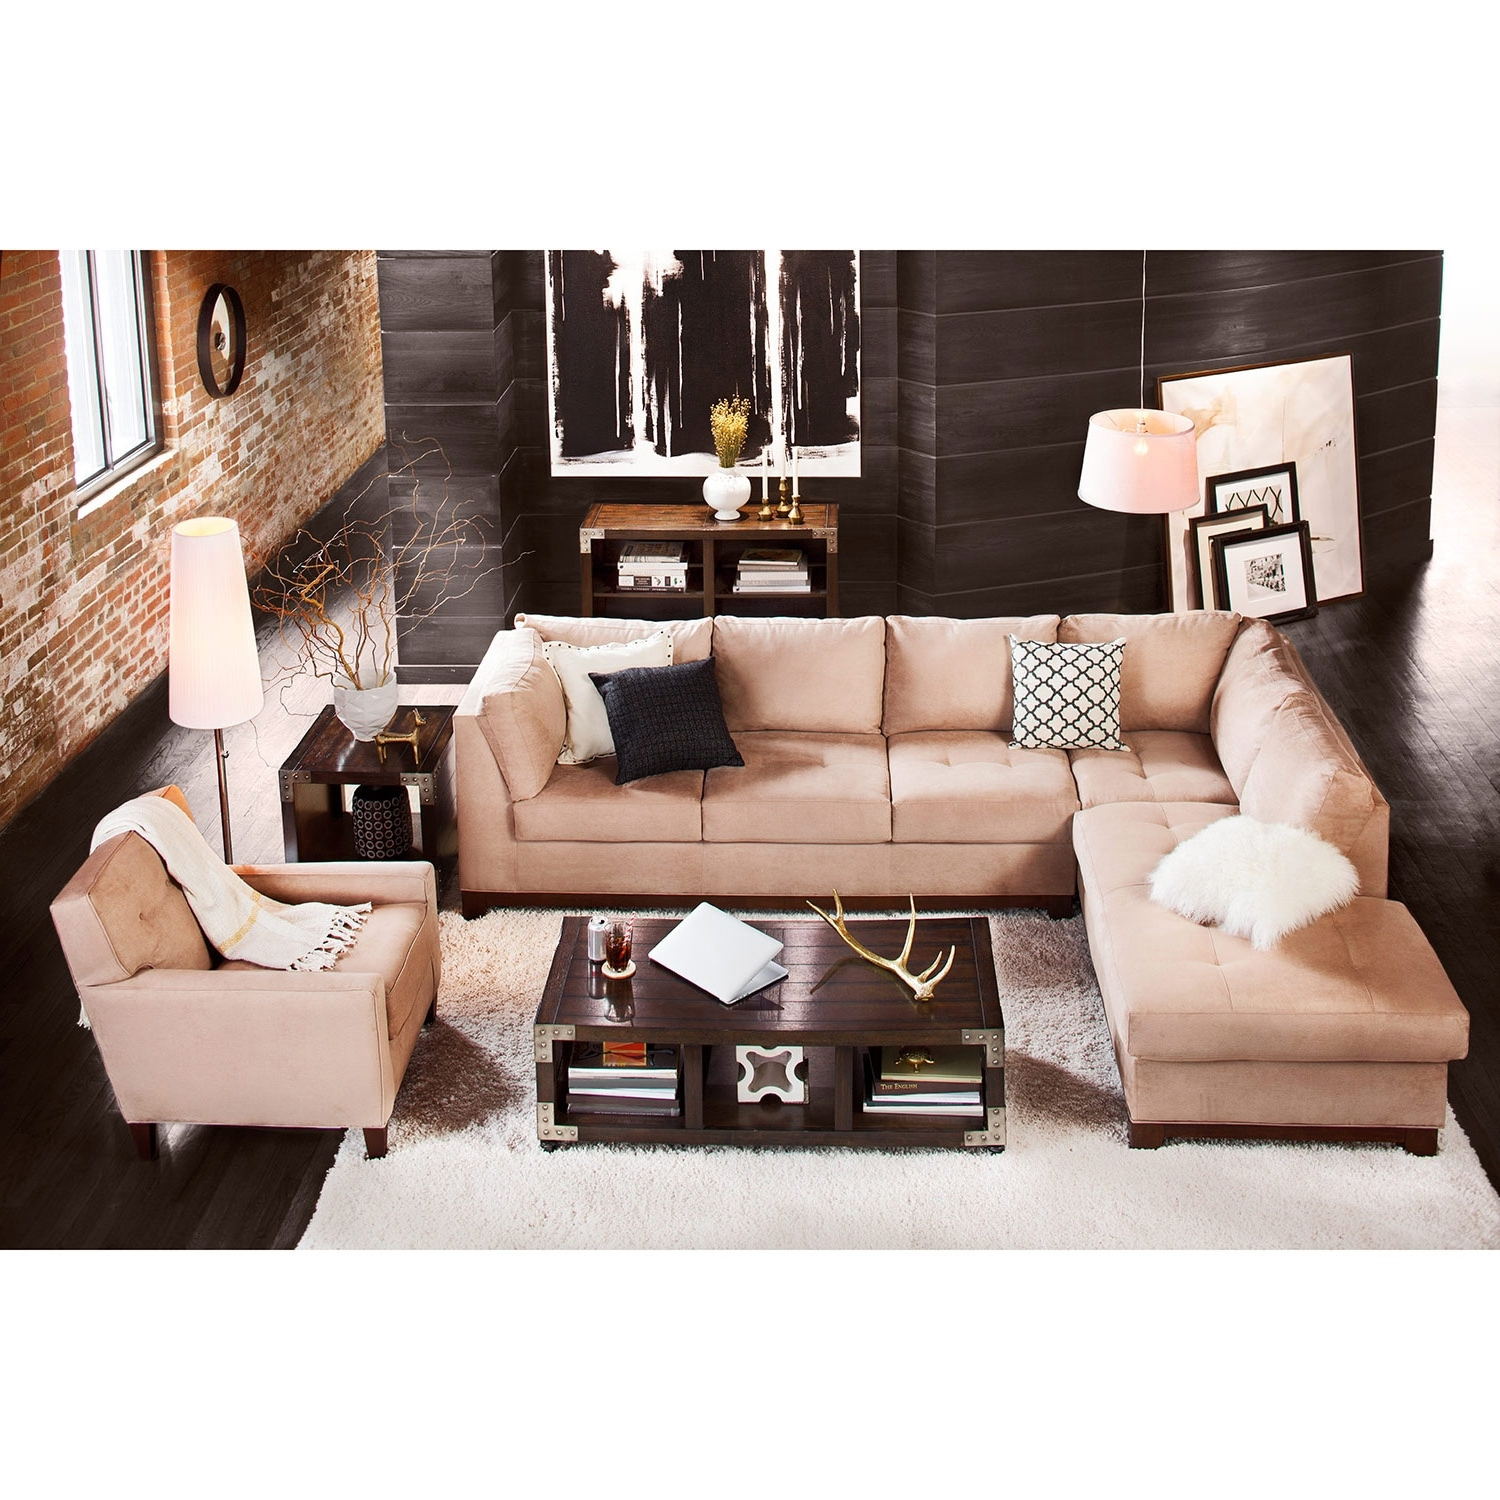 Newest Arrowmask 2 Piece Sectionals With Sleeper & Left Facing Chaise Pertaining To Soho 2 Piece Sectional With Chaise (Gallery 16 of 20)